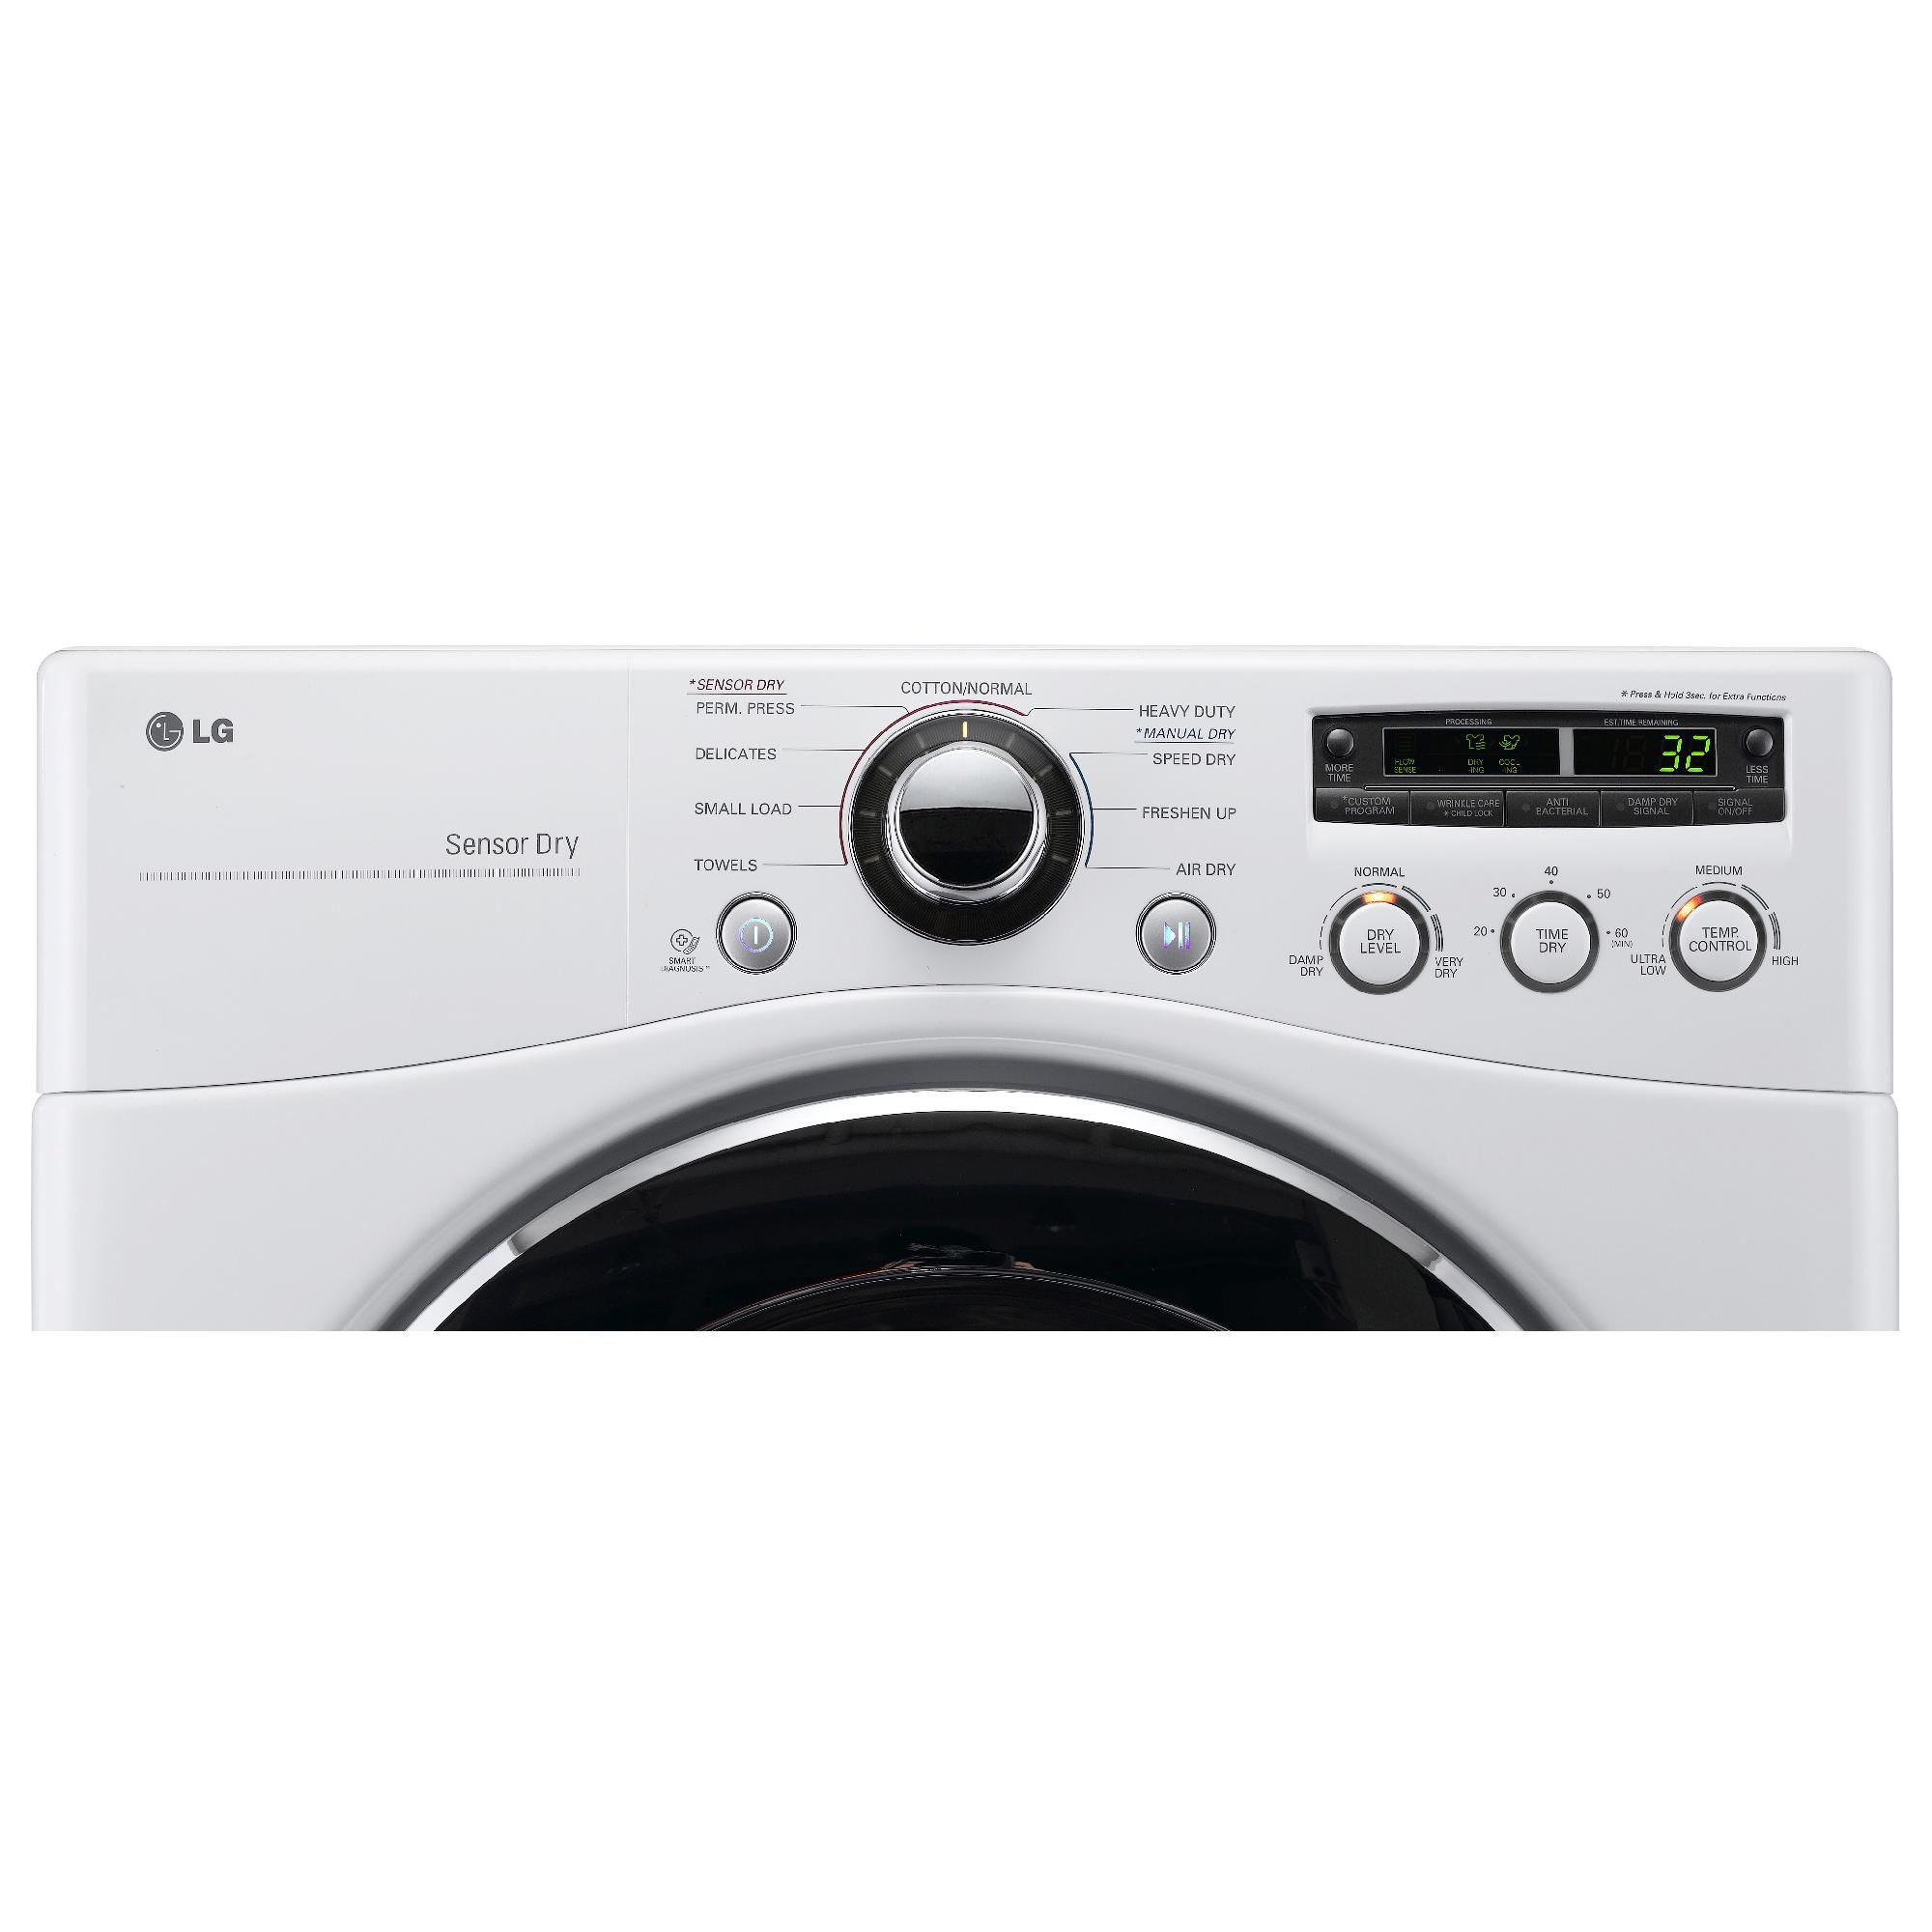 LG 7.3 cu. ft. Electric Dryer - White